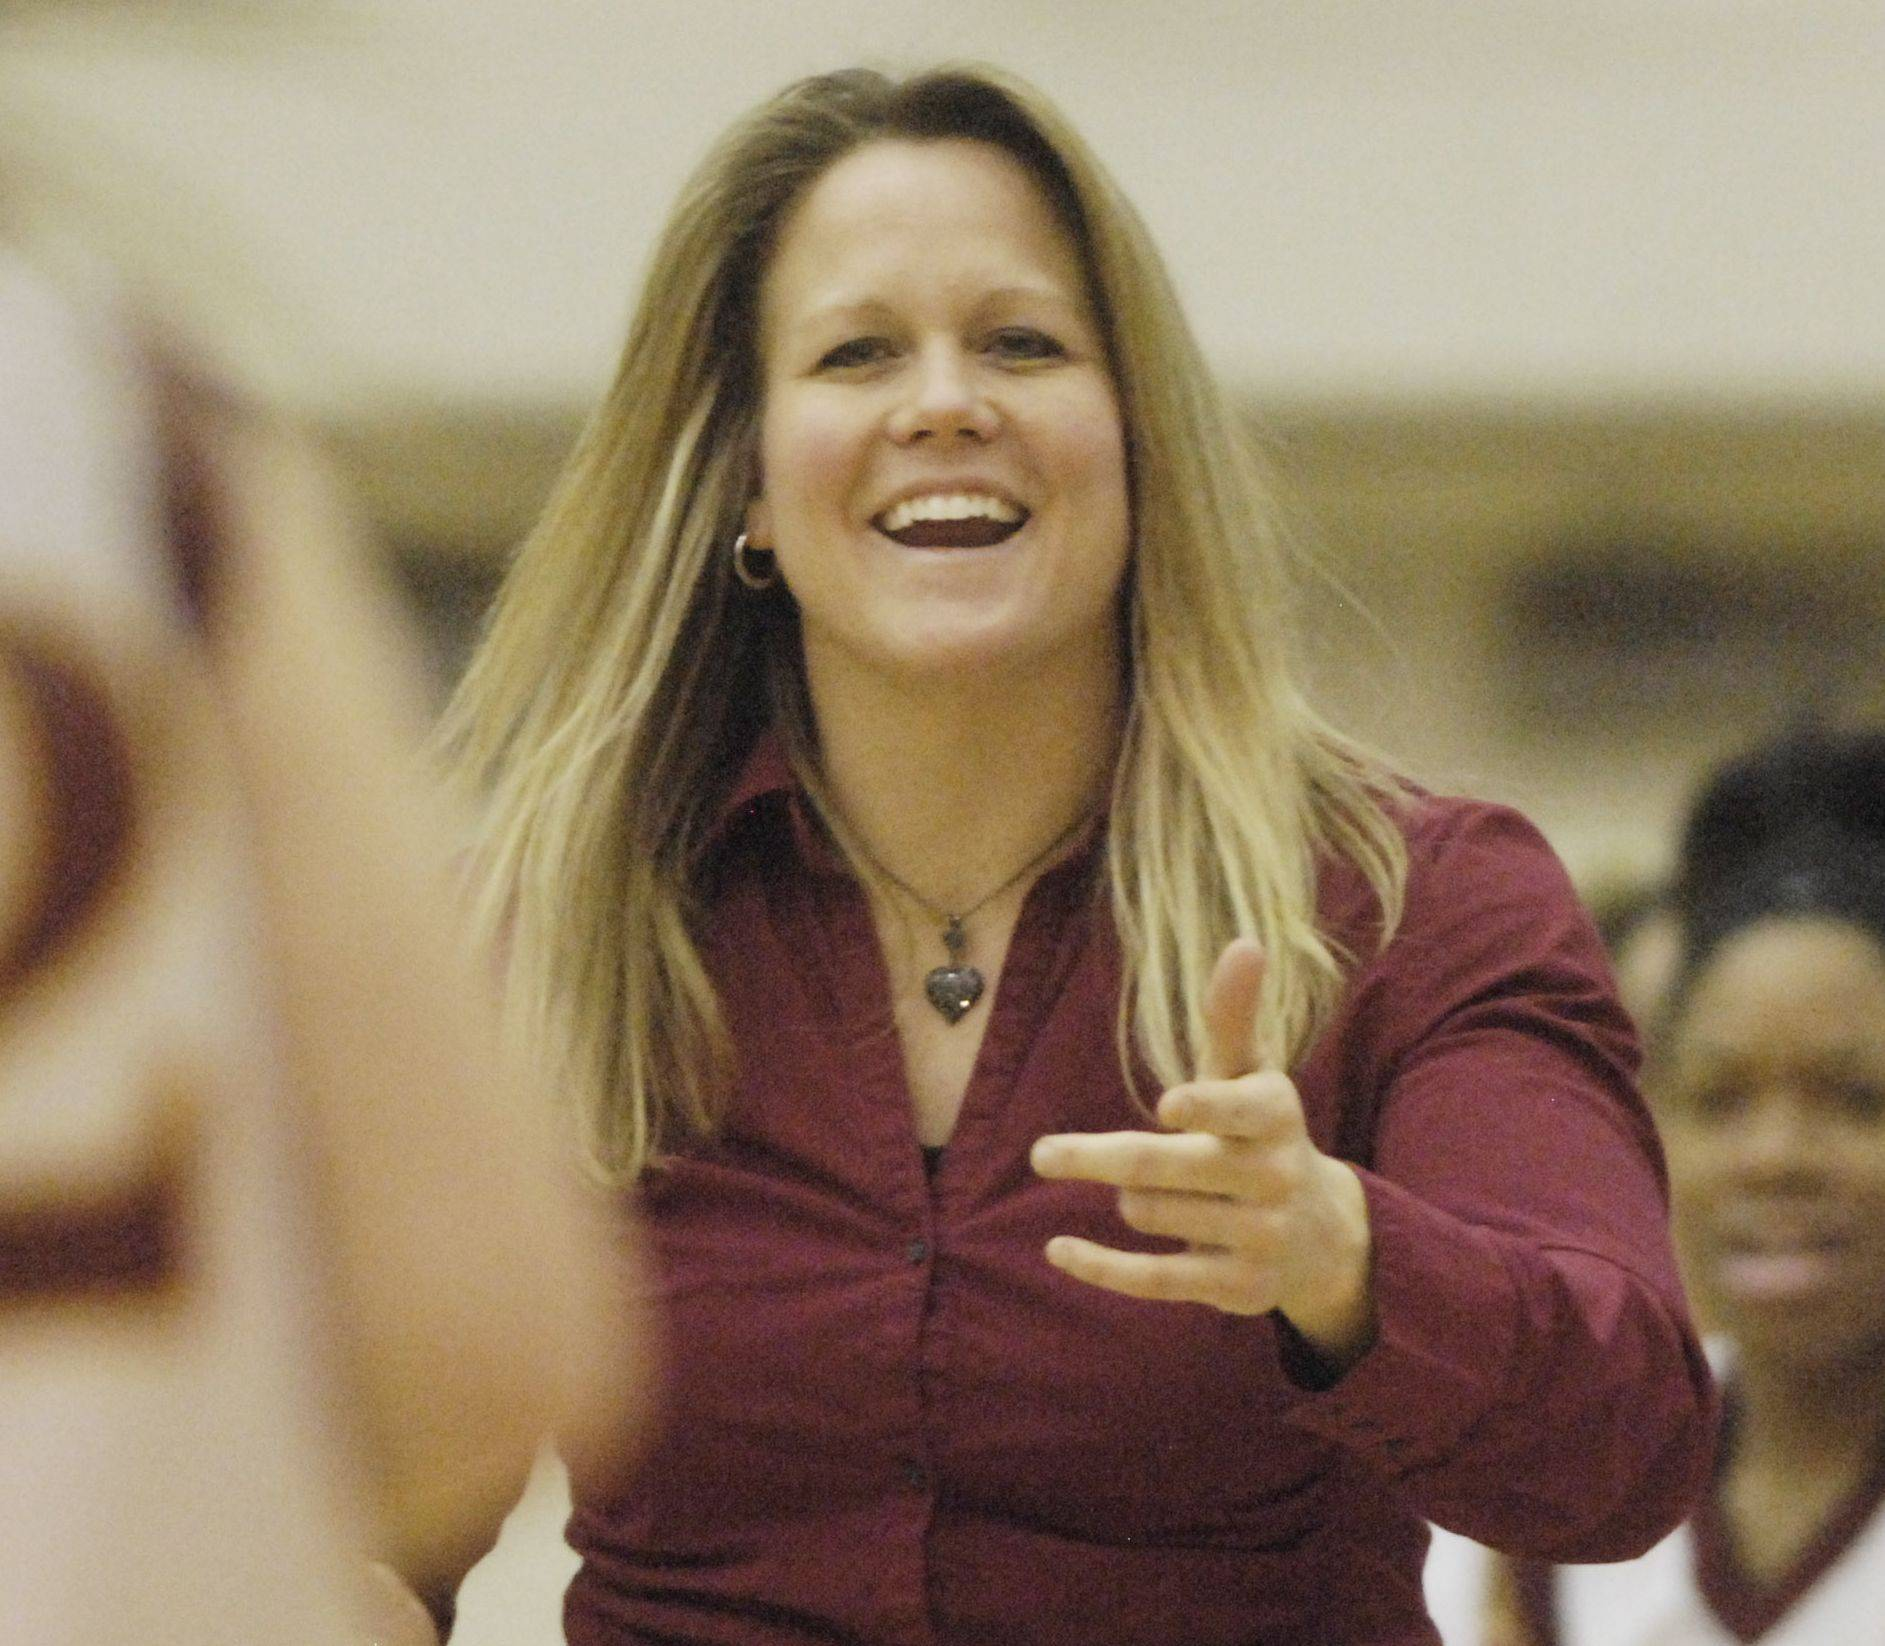 Schaumburg girls basketball coach Ashley Berggren will be inducted into the Illinois Basketball Coaches Association Hall of Fame later this season. celebrates with her team after defeating St. Charles East during Tuesday�s regional semifinal at Bartlett High School.